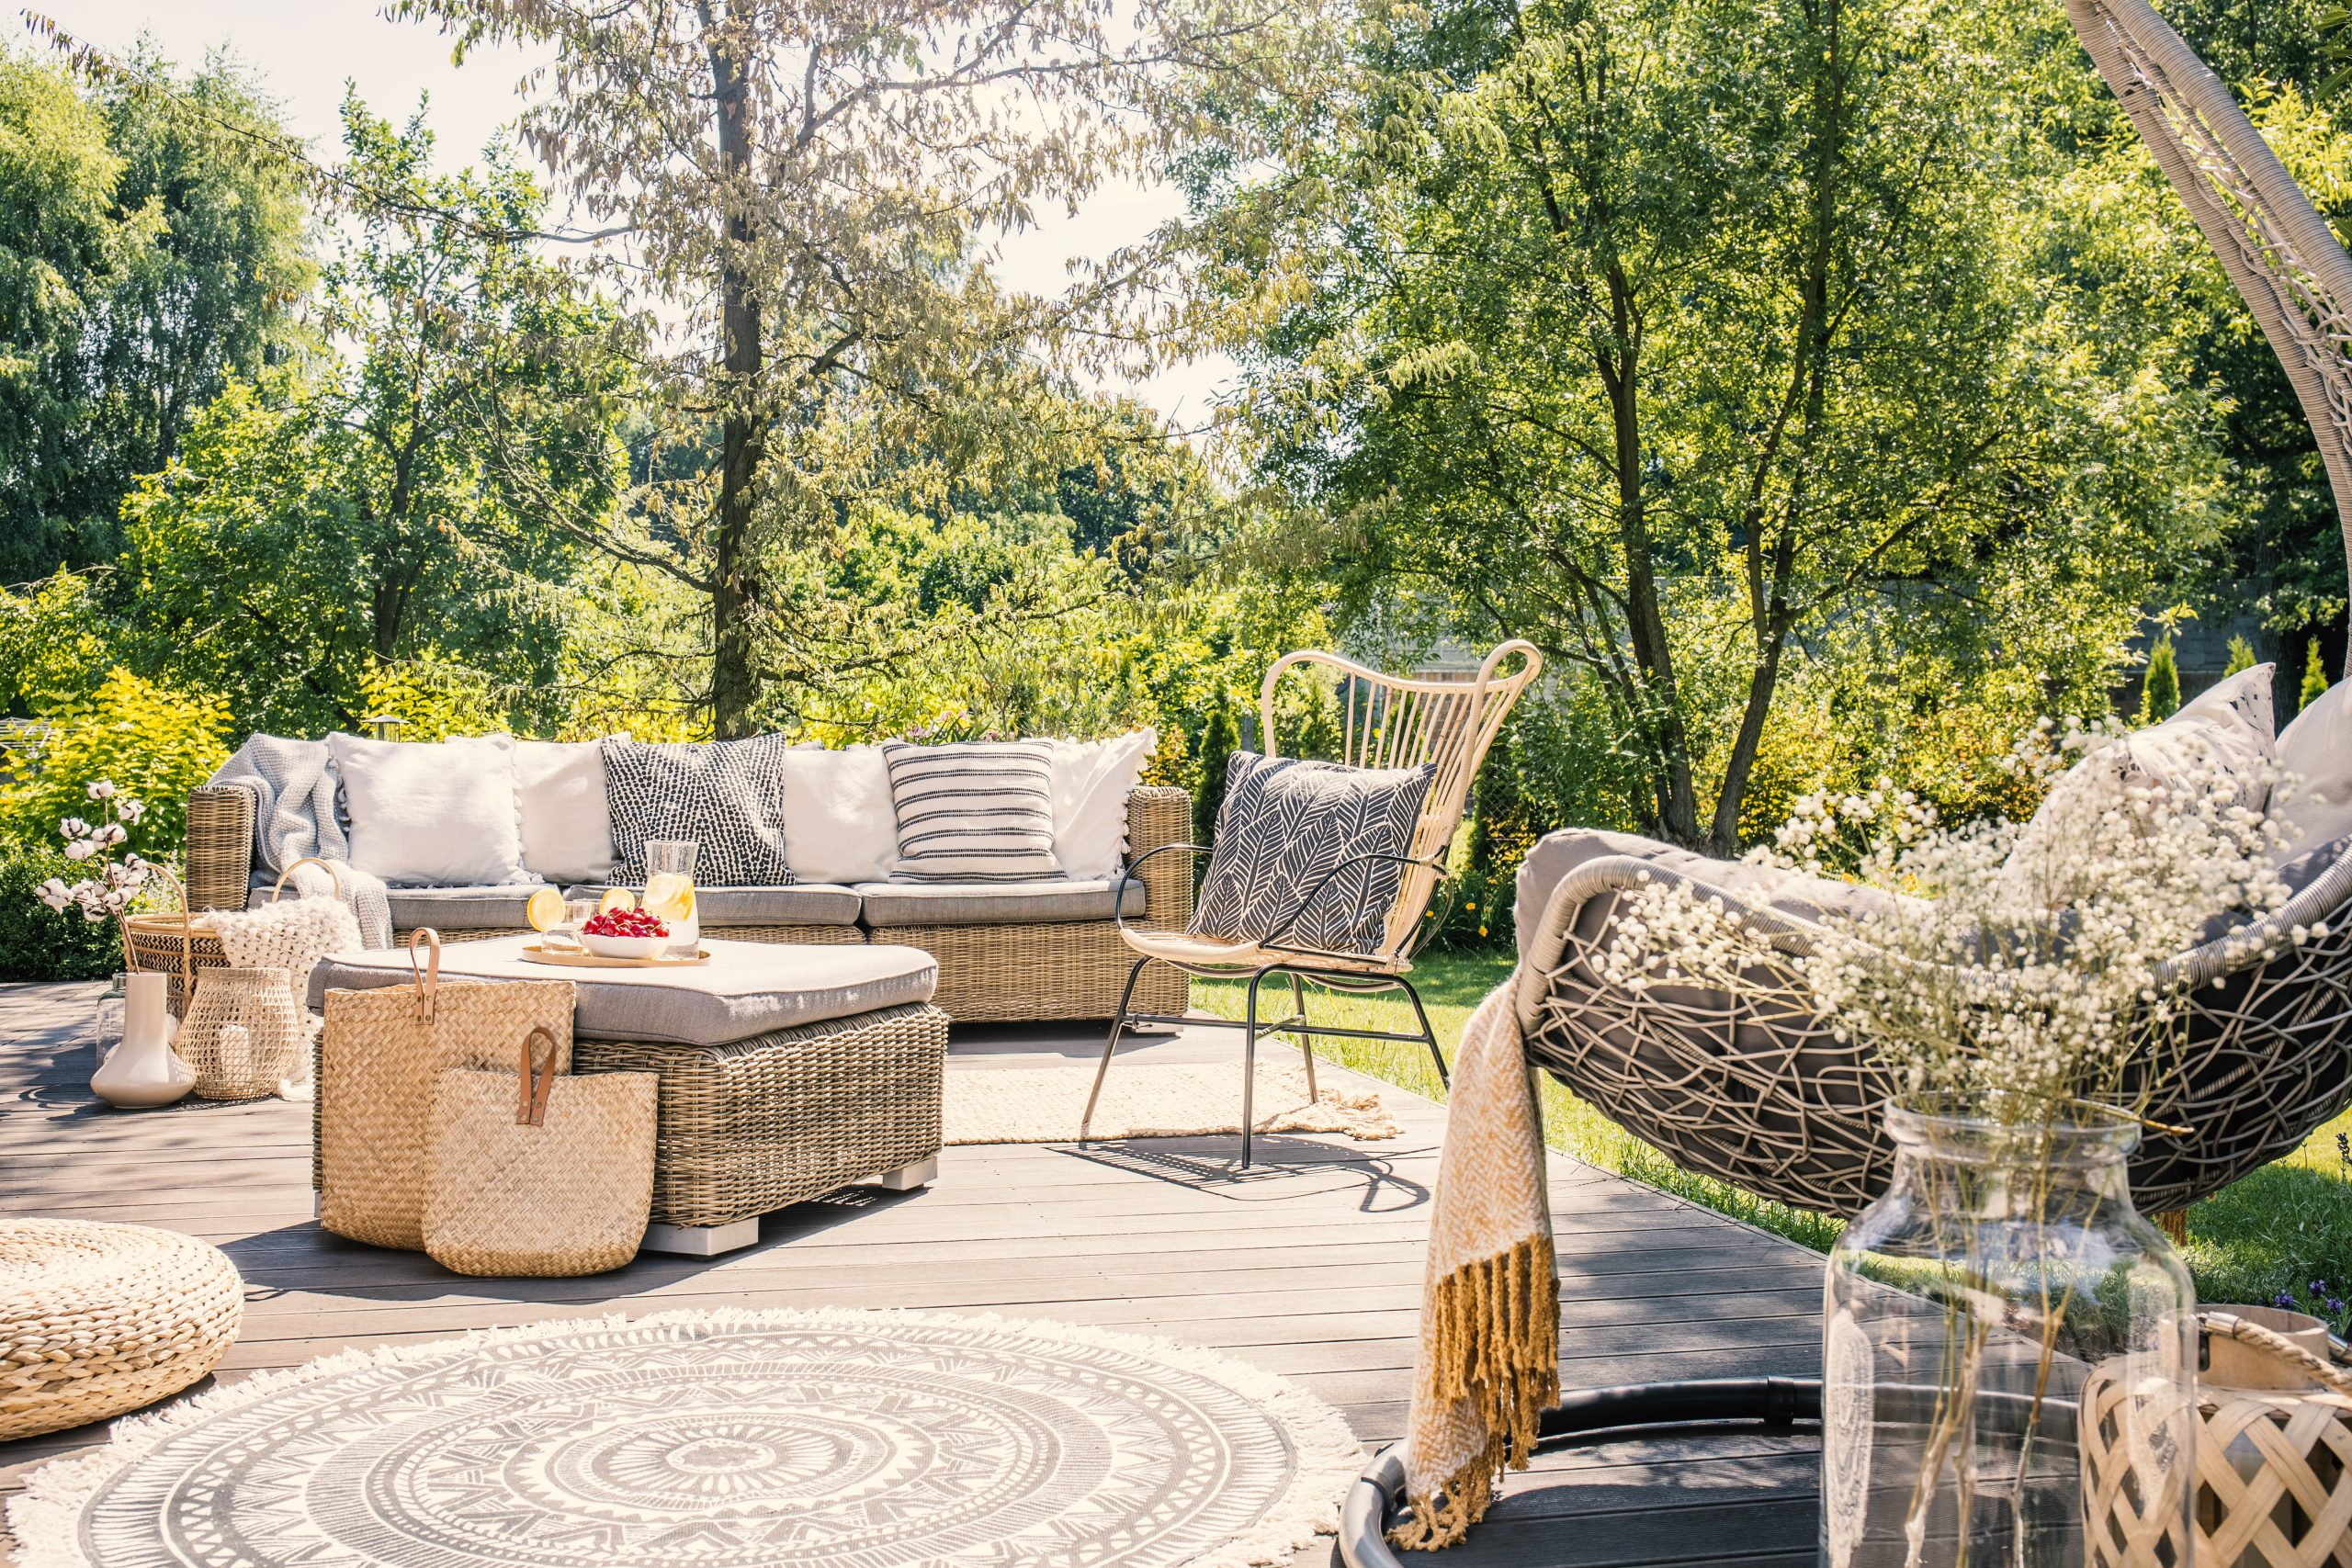 Give your outdoors a makeover